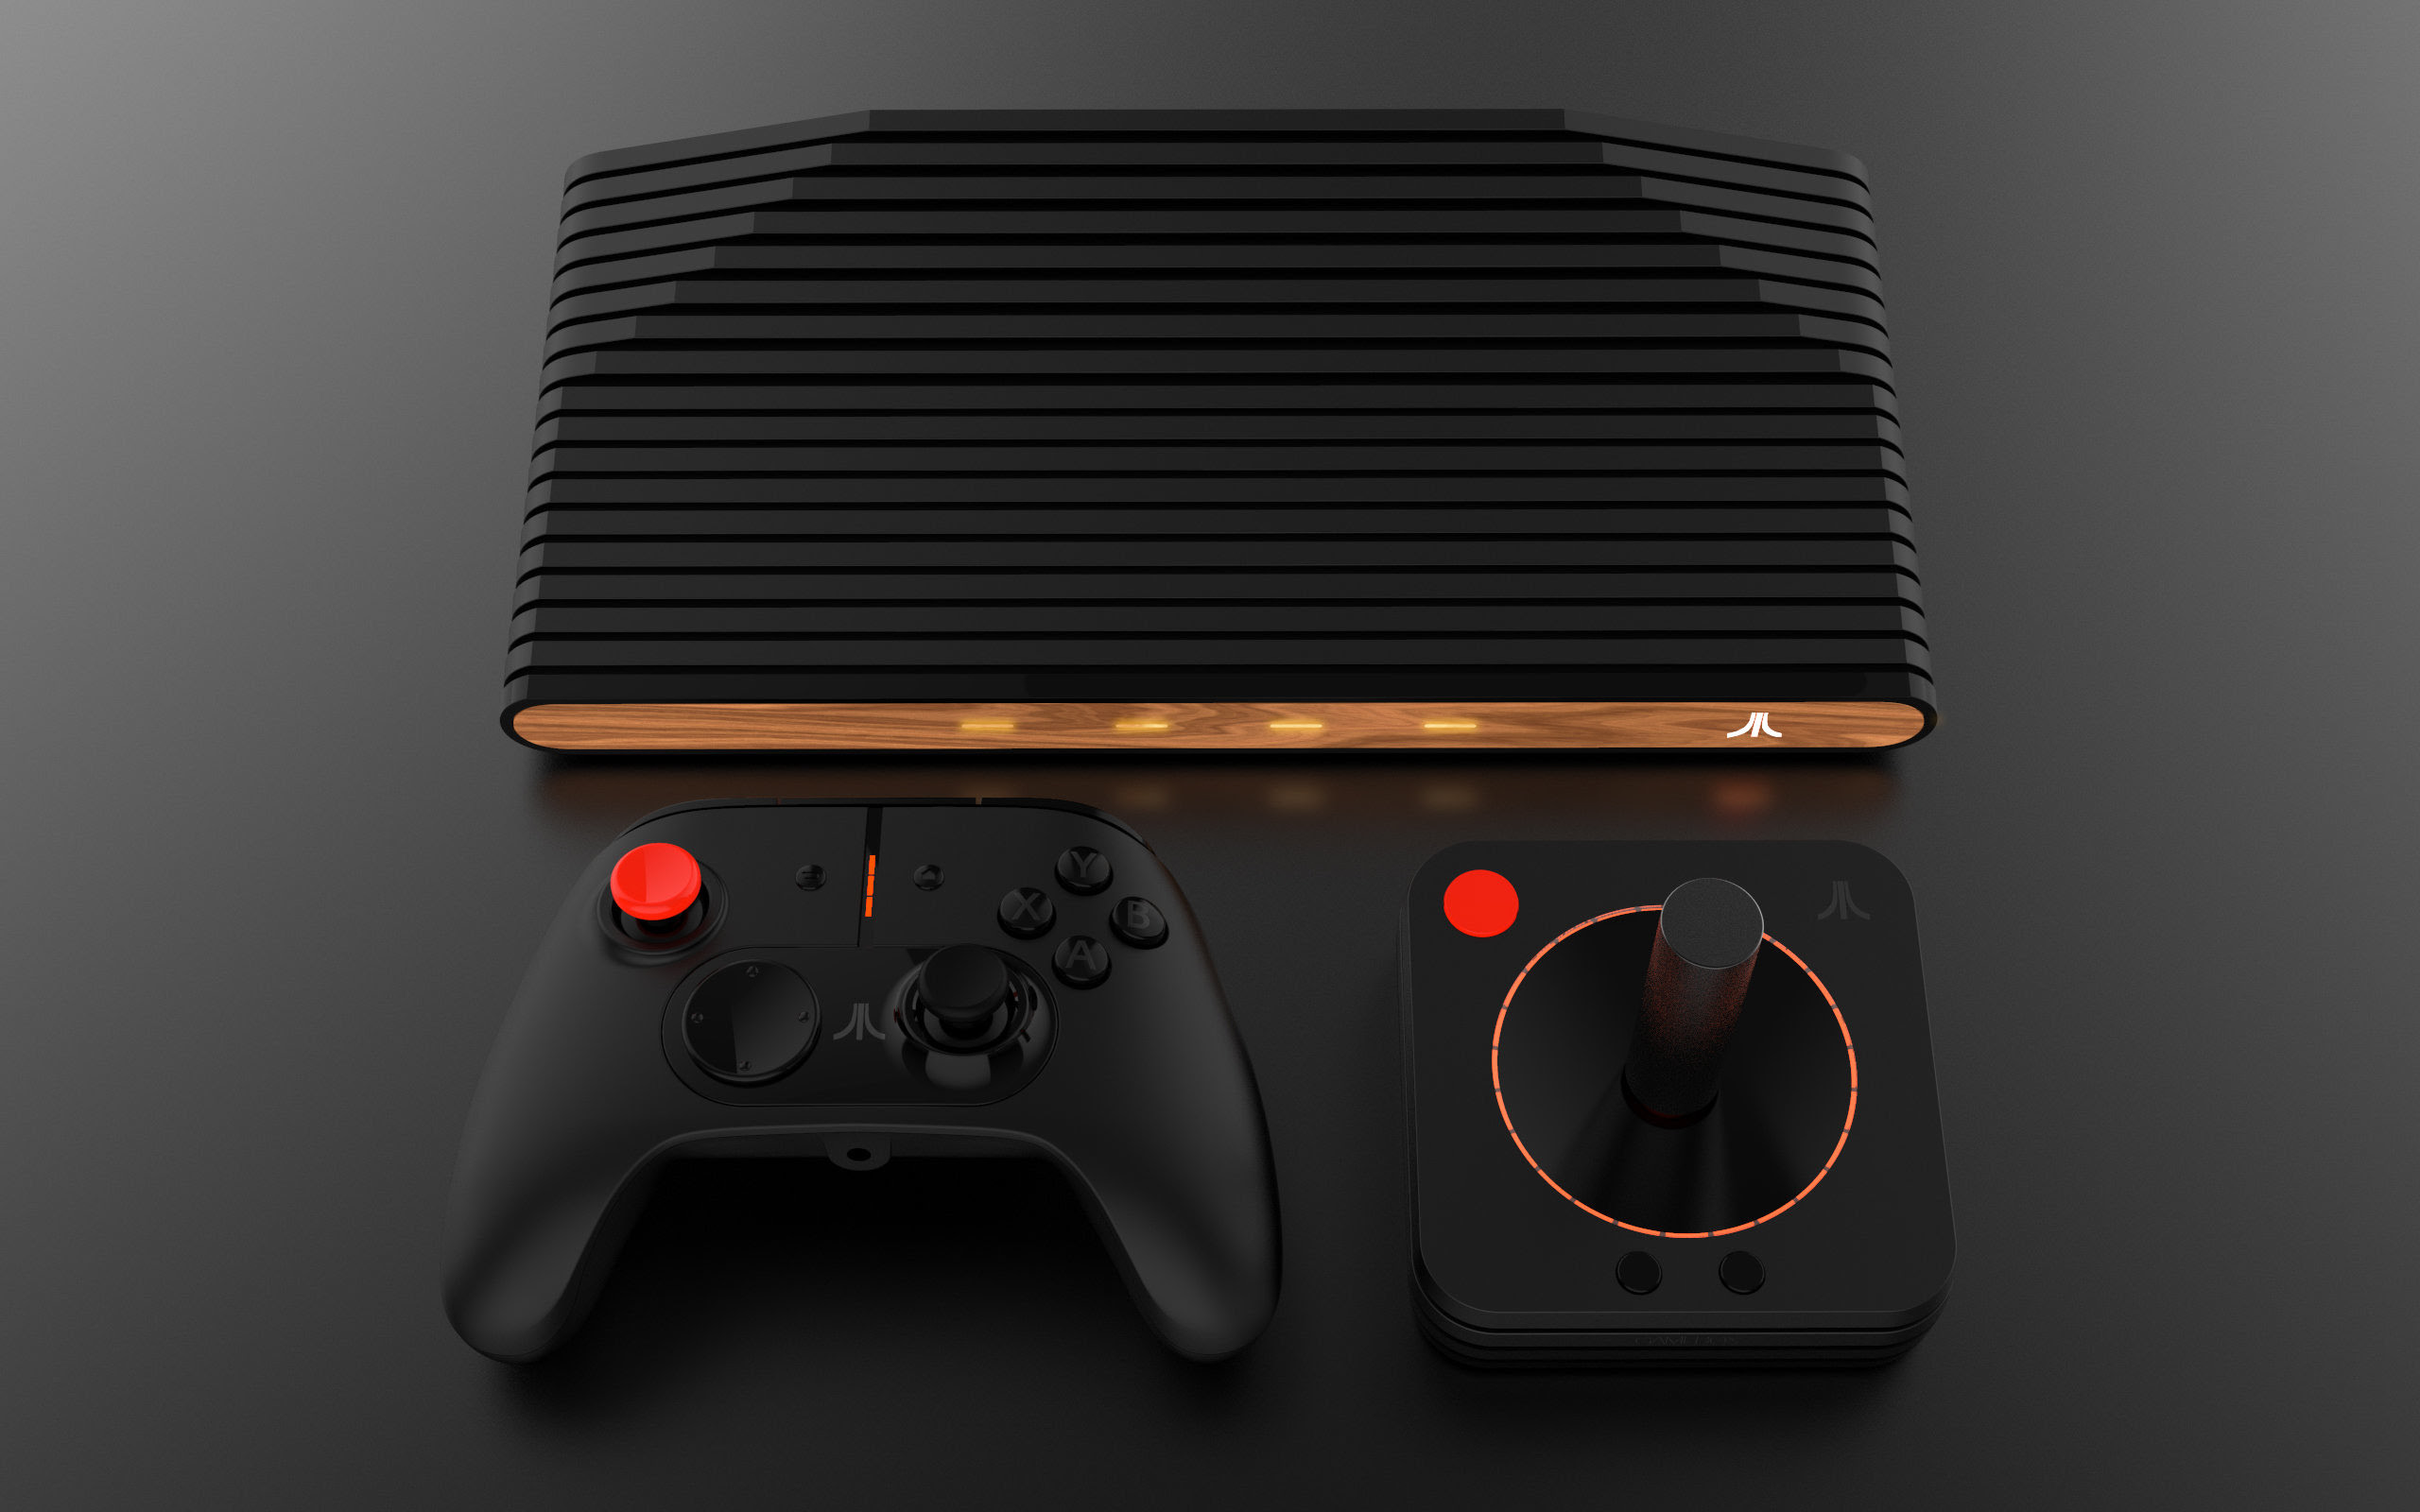 Atari's Linux-powered VCS console gets pre-order date, $199 starting price